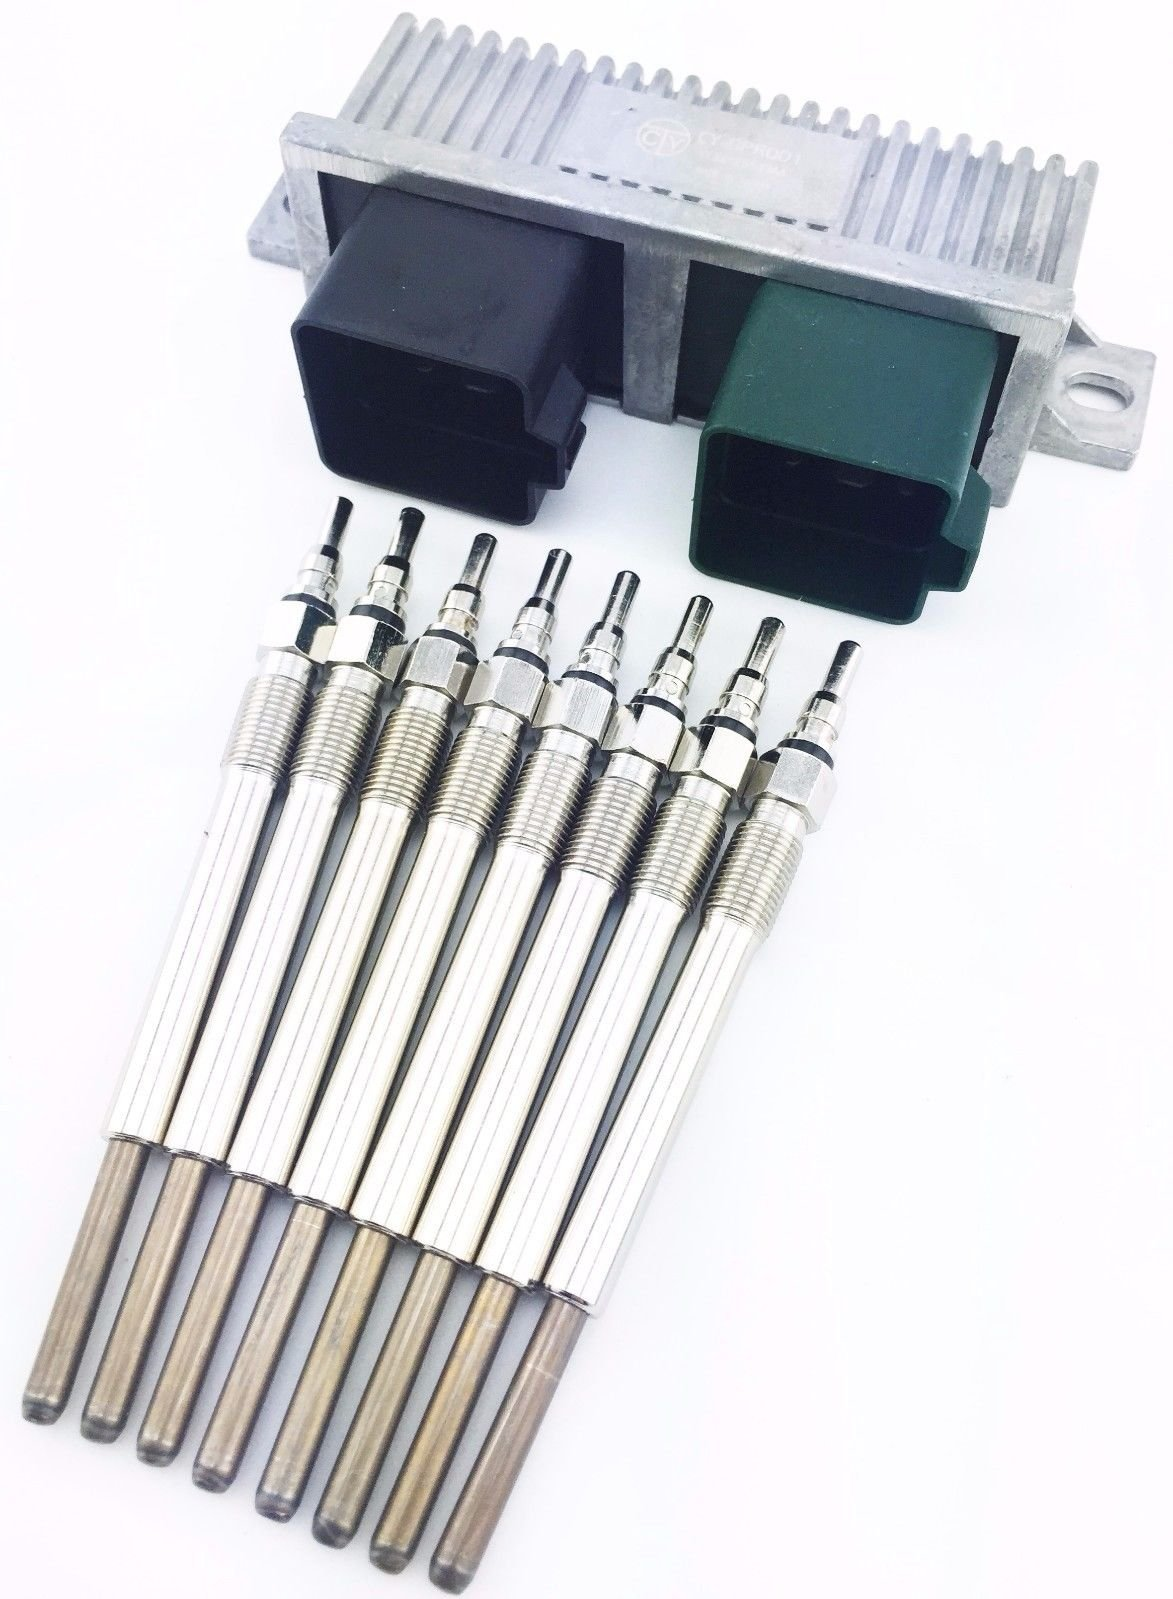 Aftermarket 02-03 FORD POWERSTROKE 7.3L 7.3 TURBO DIESEL 8 GLOW PLUGS & GPCM CONTROL MODULE by Aftermarket (Image #1)